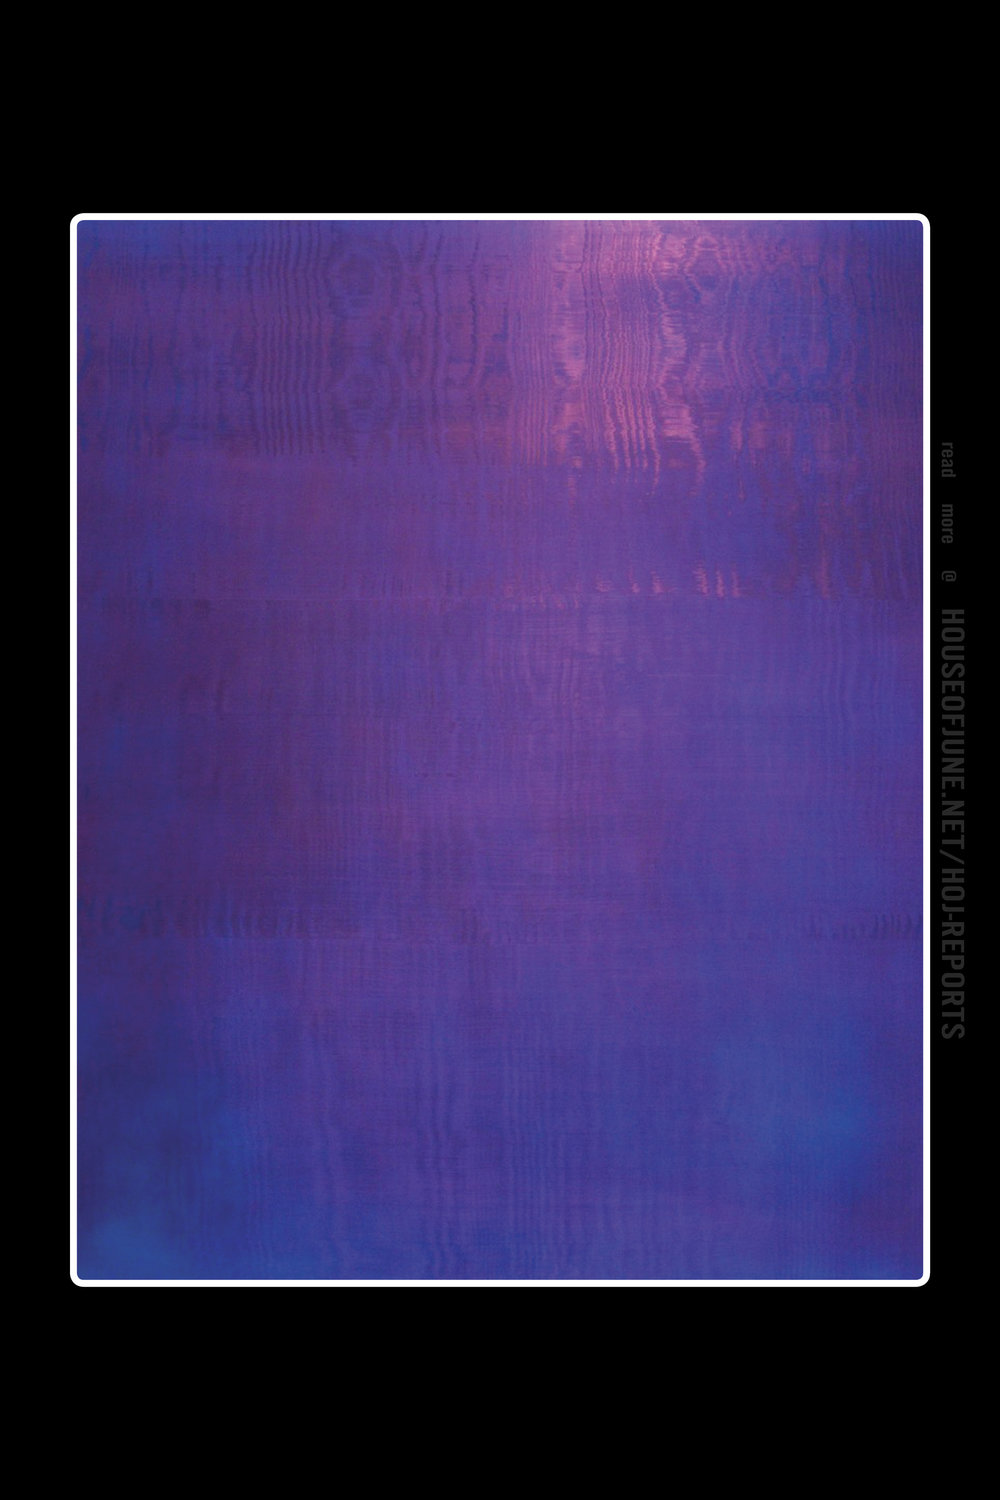 Rolf Rose   (Acrylic on Canvas)  Untitled (Violet, Shimmering), 1996